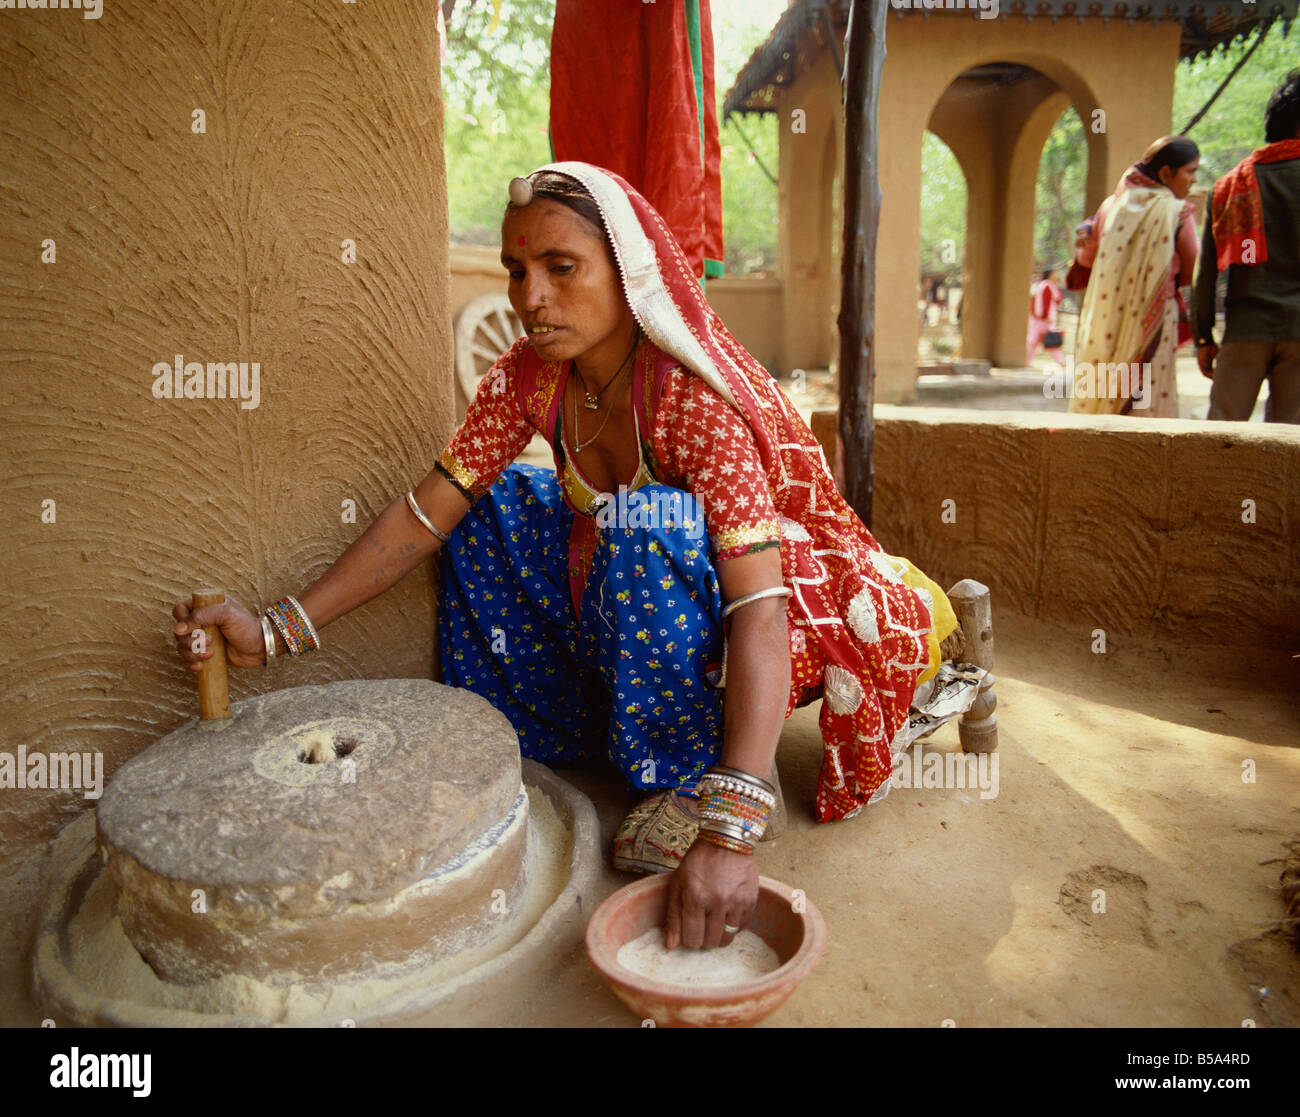 Woman Grinding Flour India